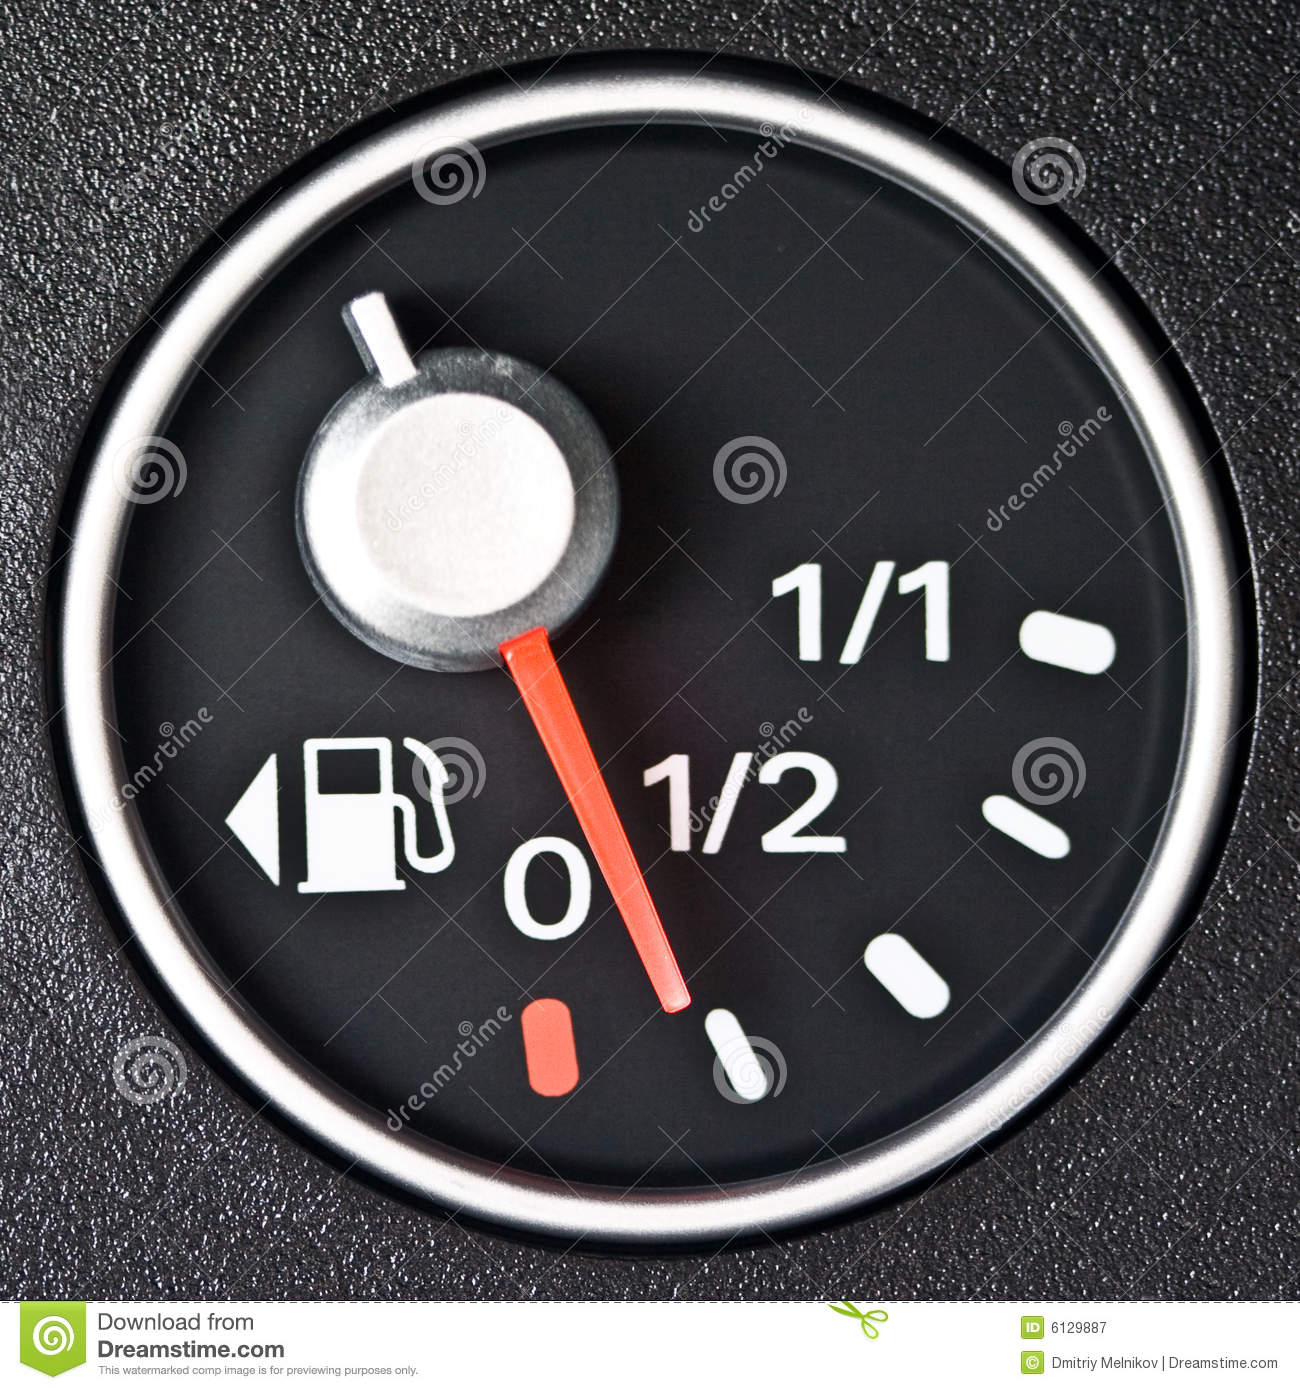 how to read gas meter in car